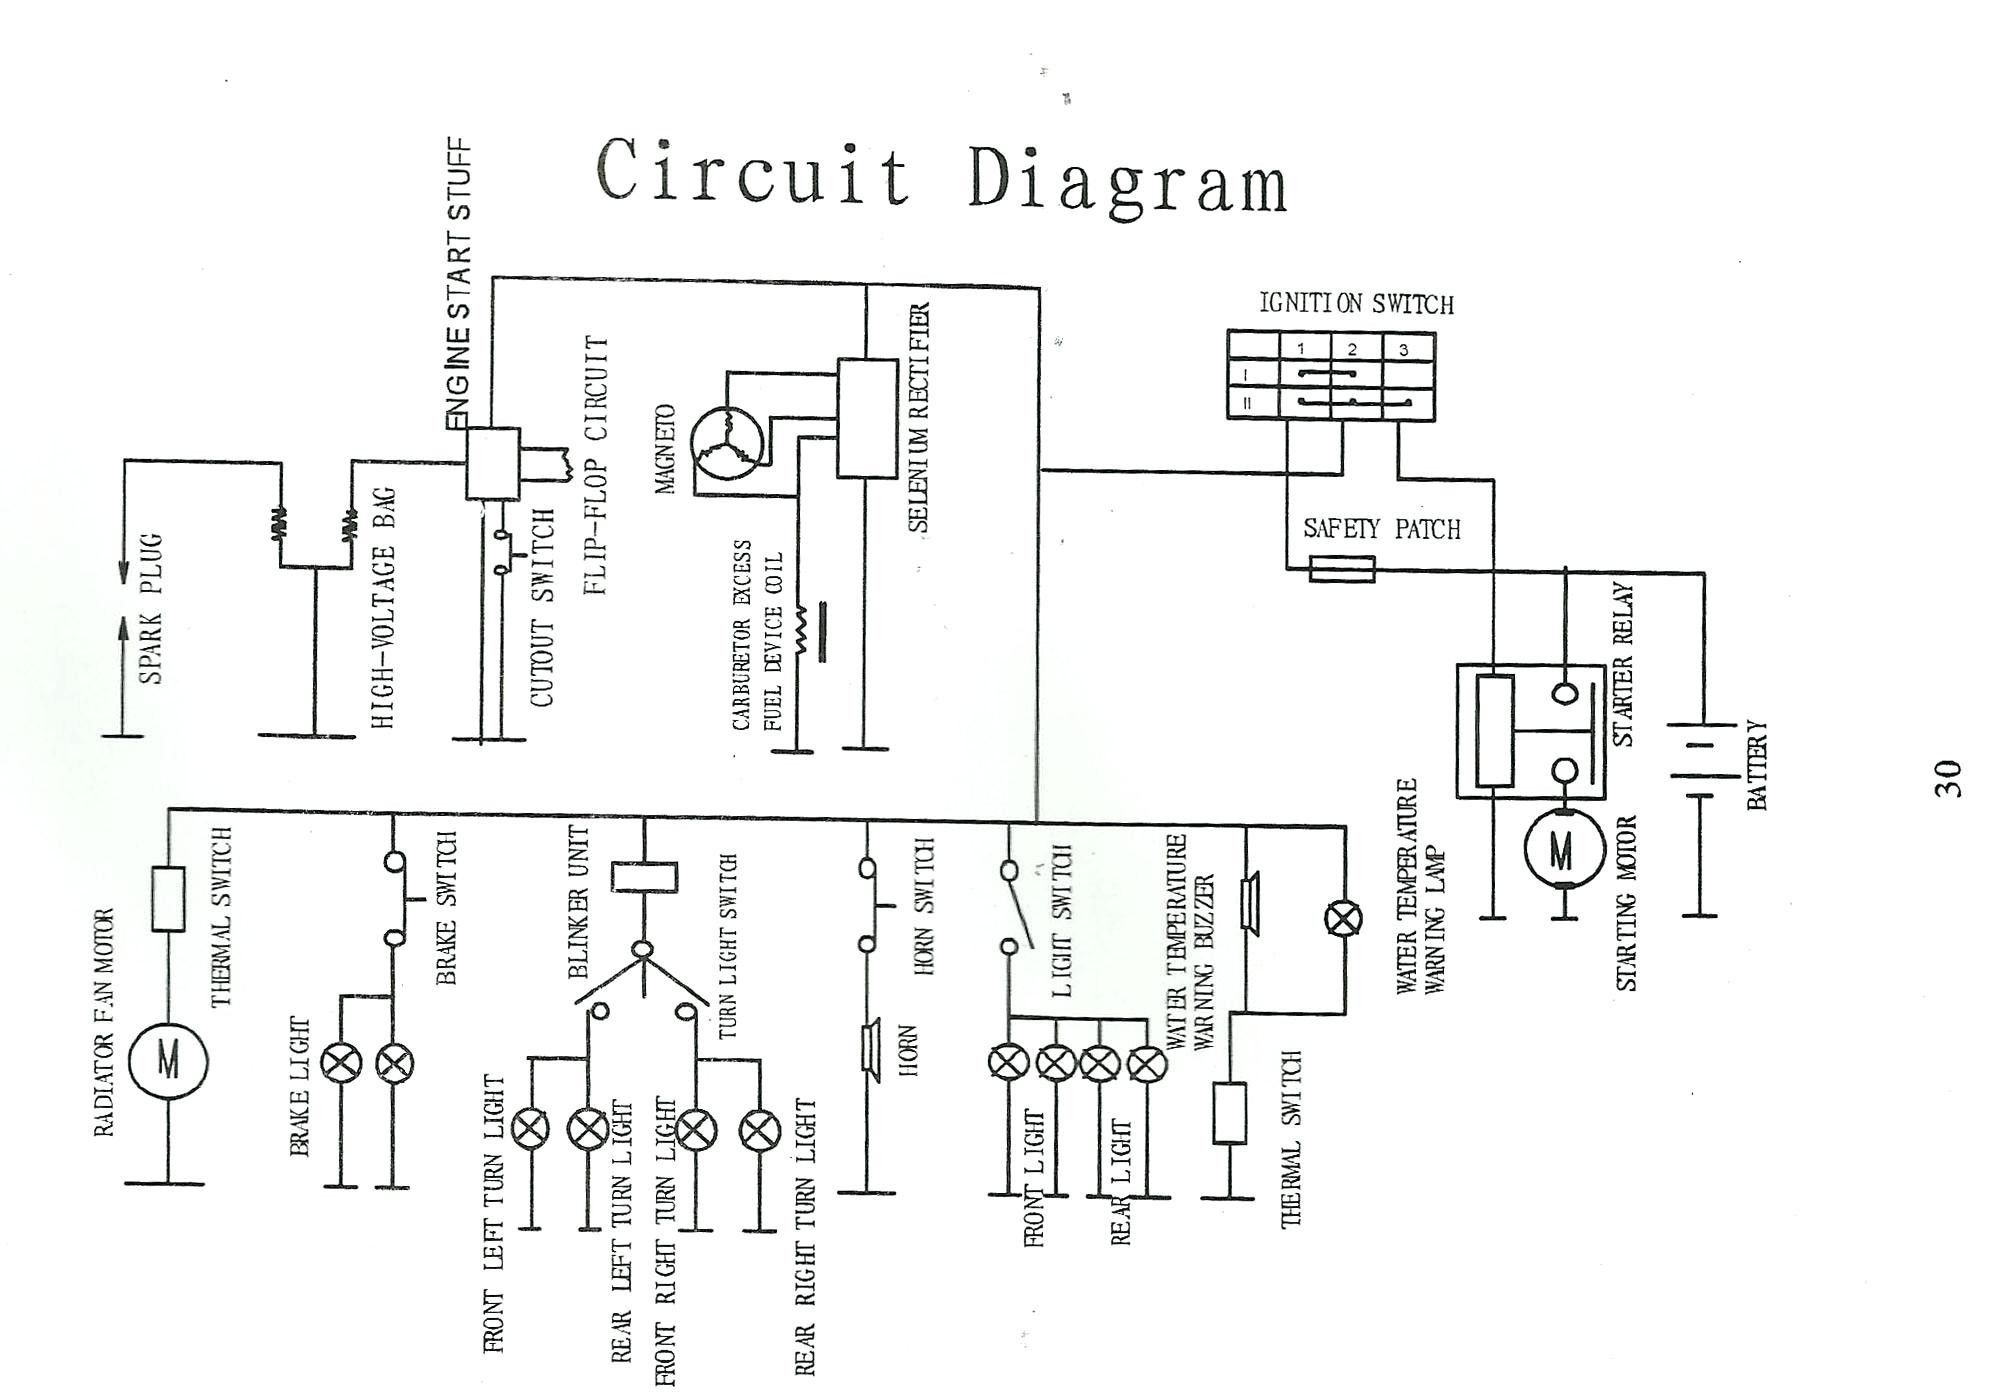 New Wiring Diagram Draw